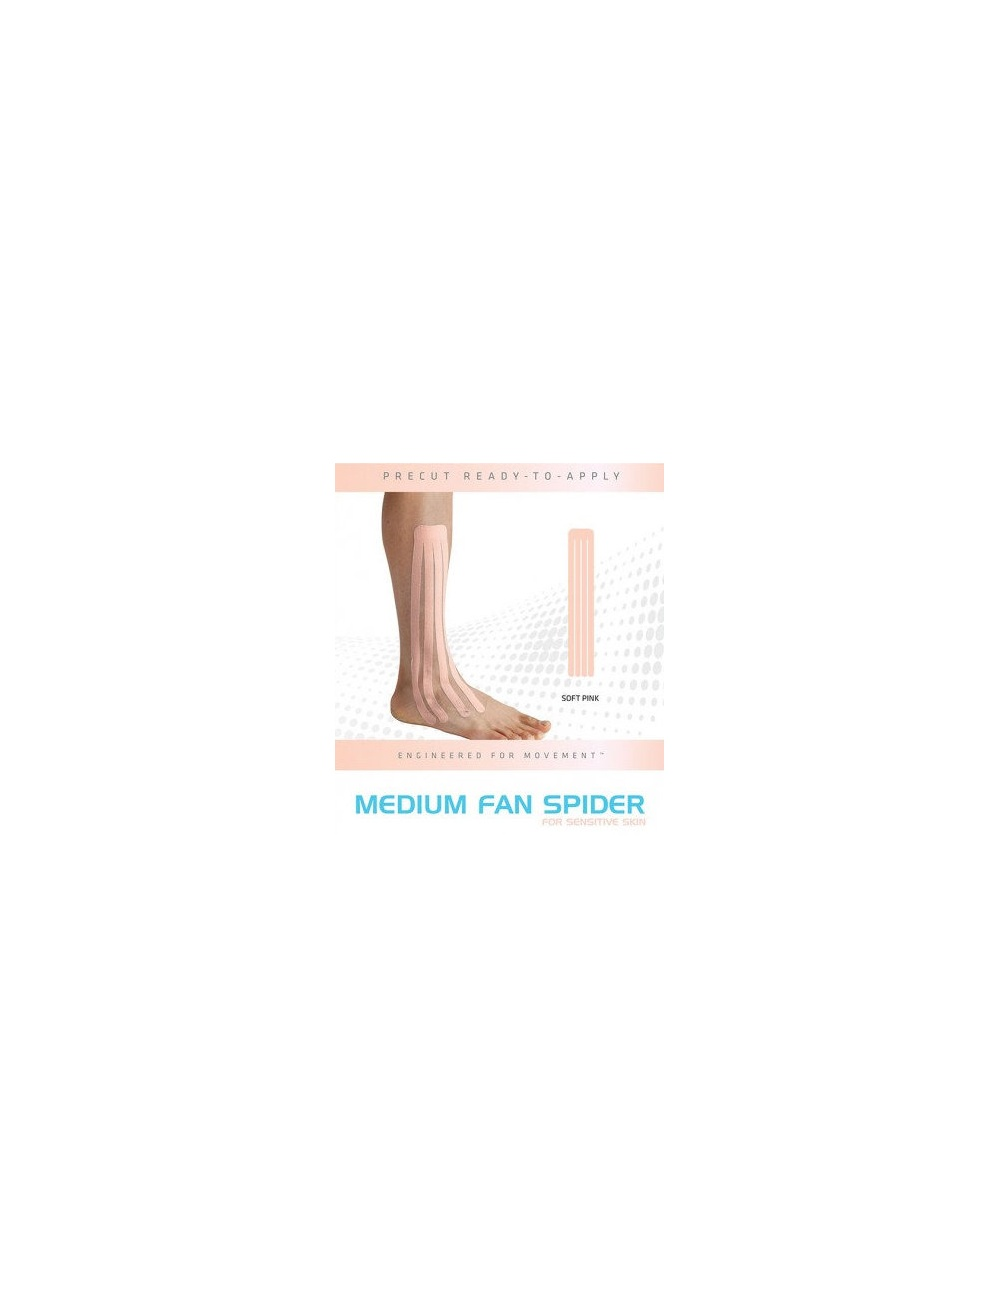 SpiderTech Gentle Medium Fan Spider